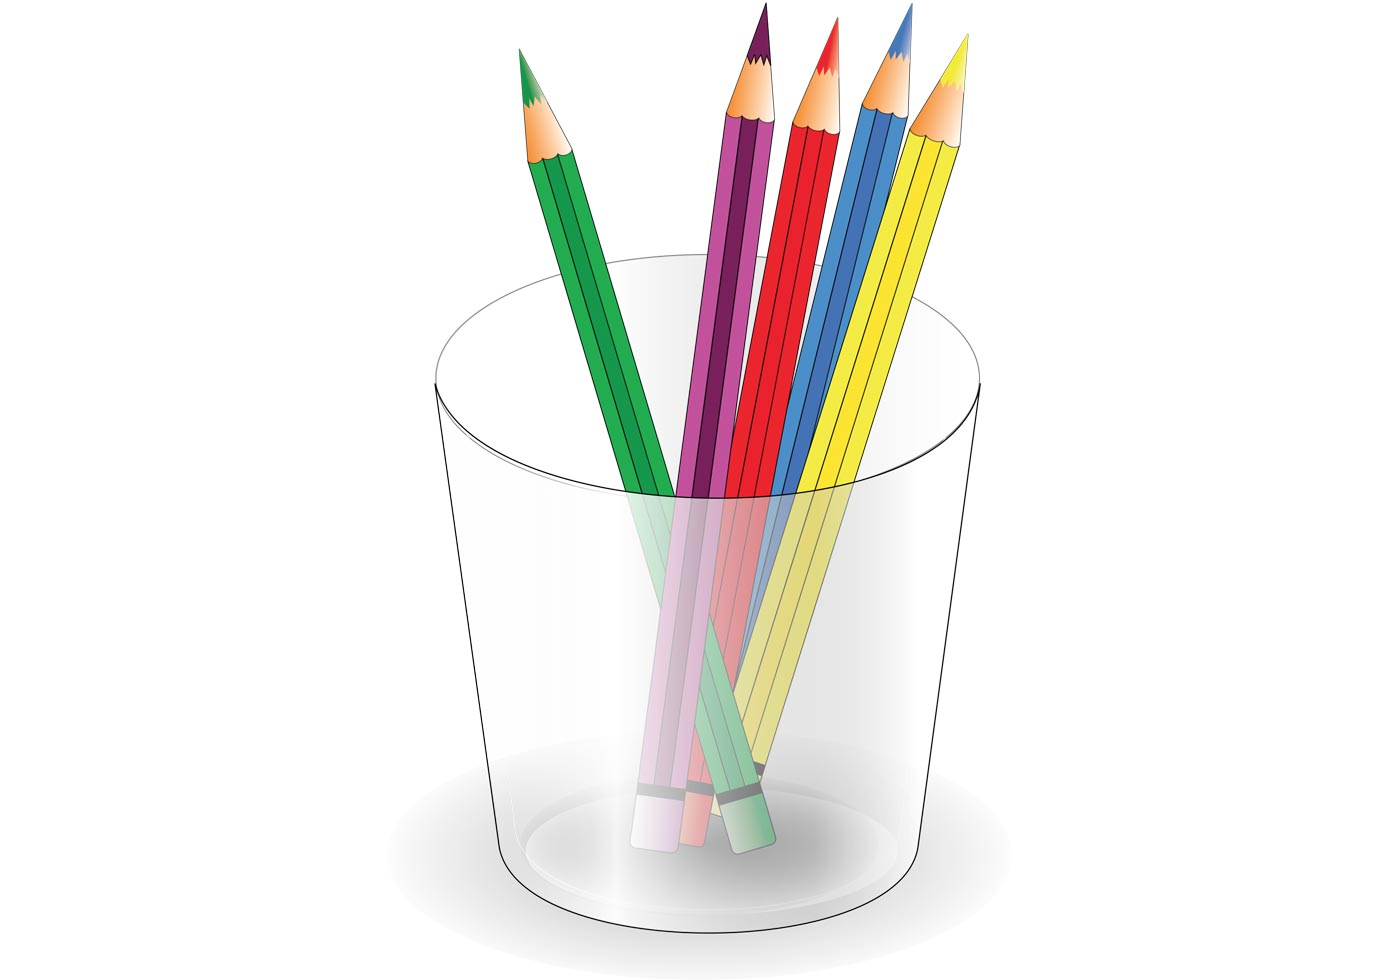 colored pencils - Download Free Vector Art, Stock Graphics ...